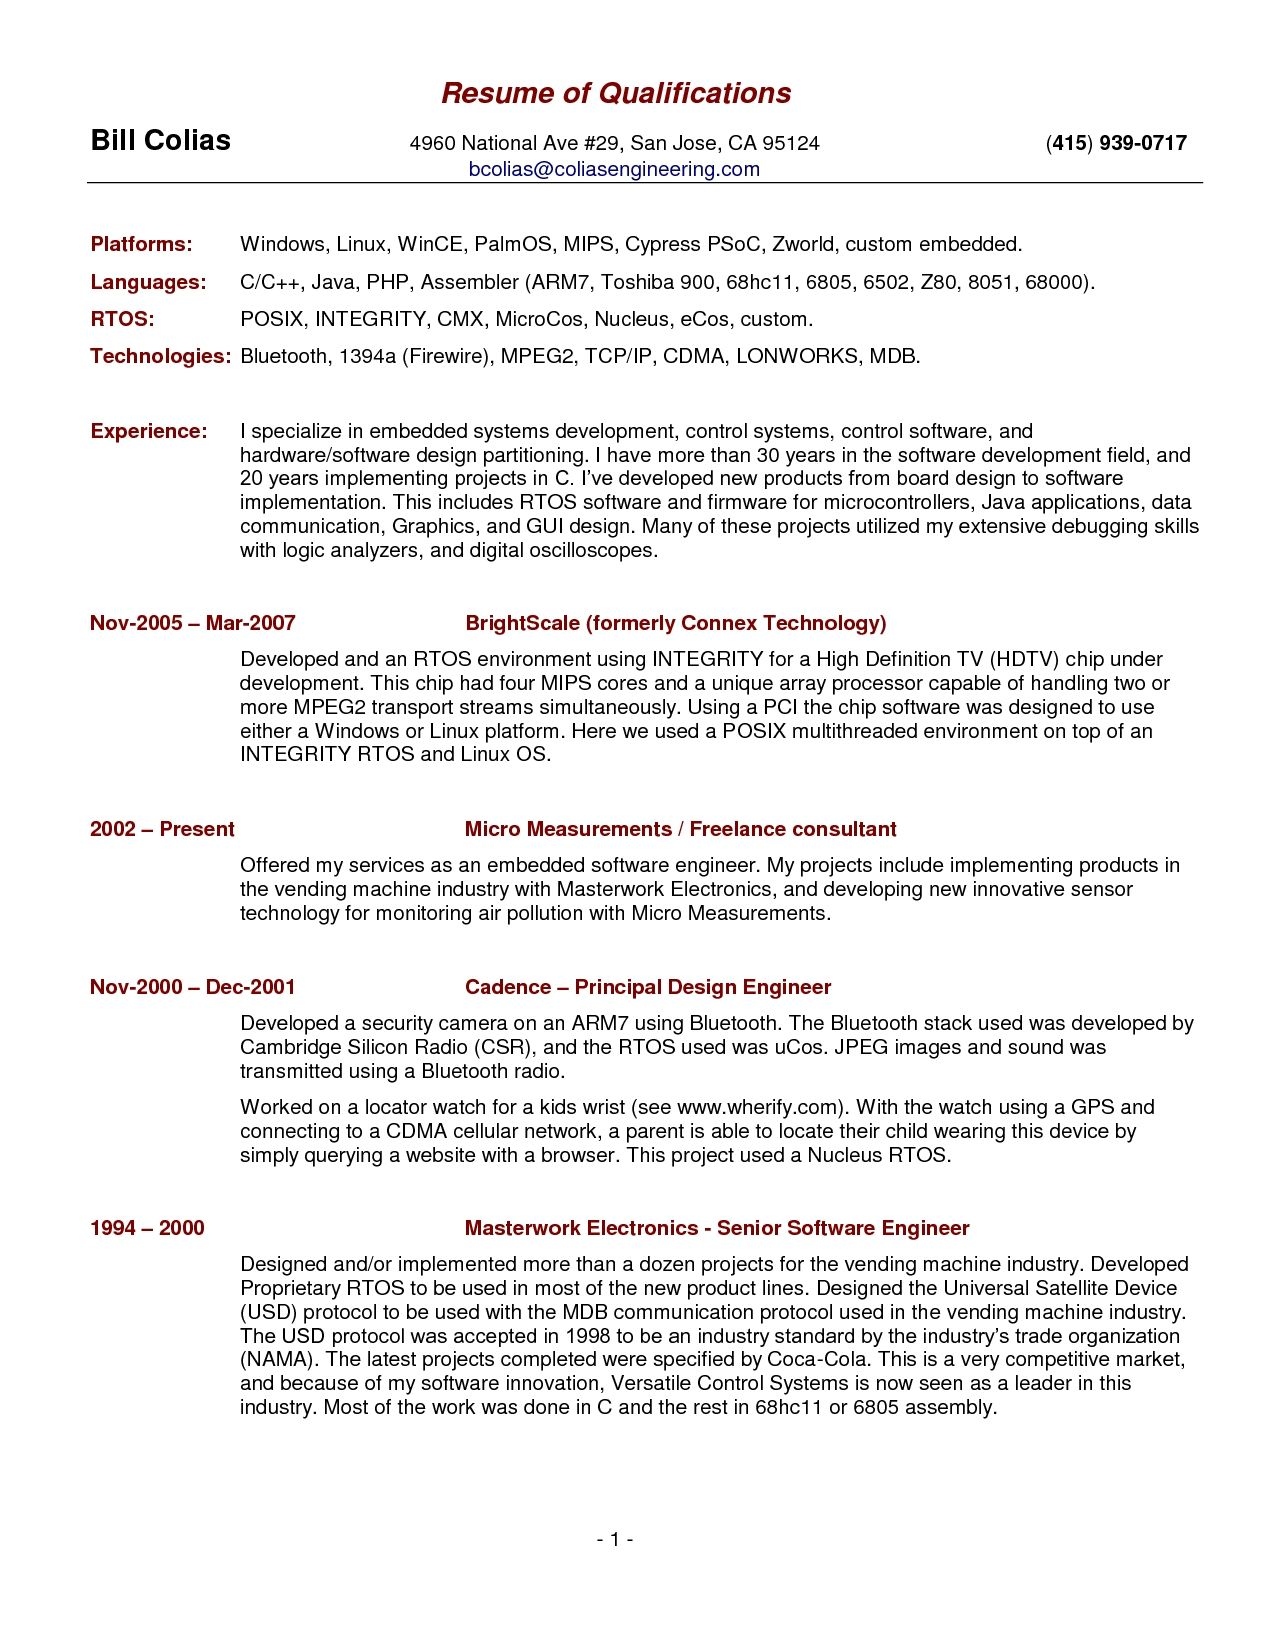 Technical Skills For Resume Qualifications For A Resume Examples 7F8Ea3A2A New Resume Skills